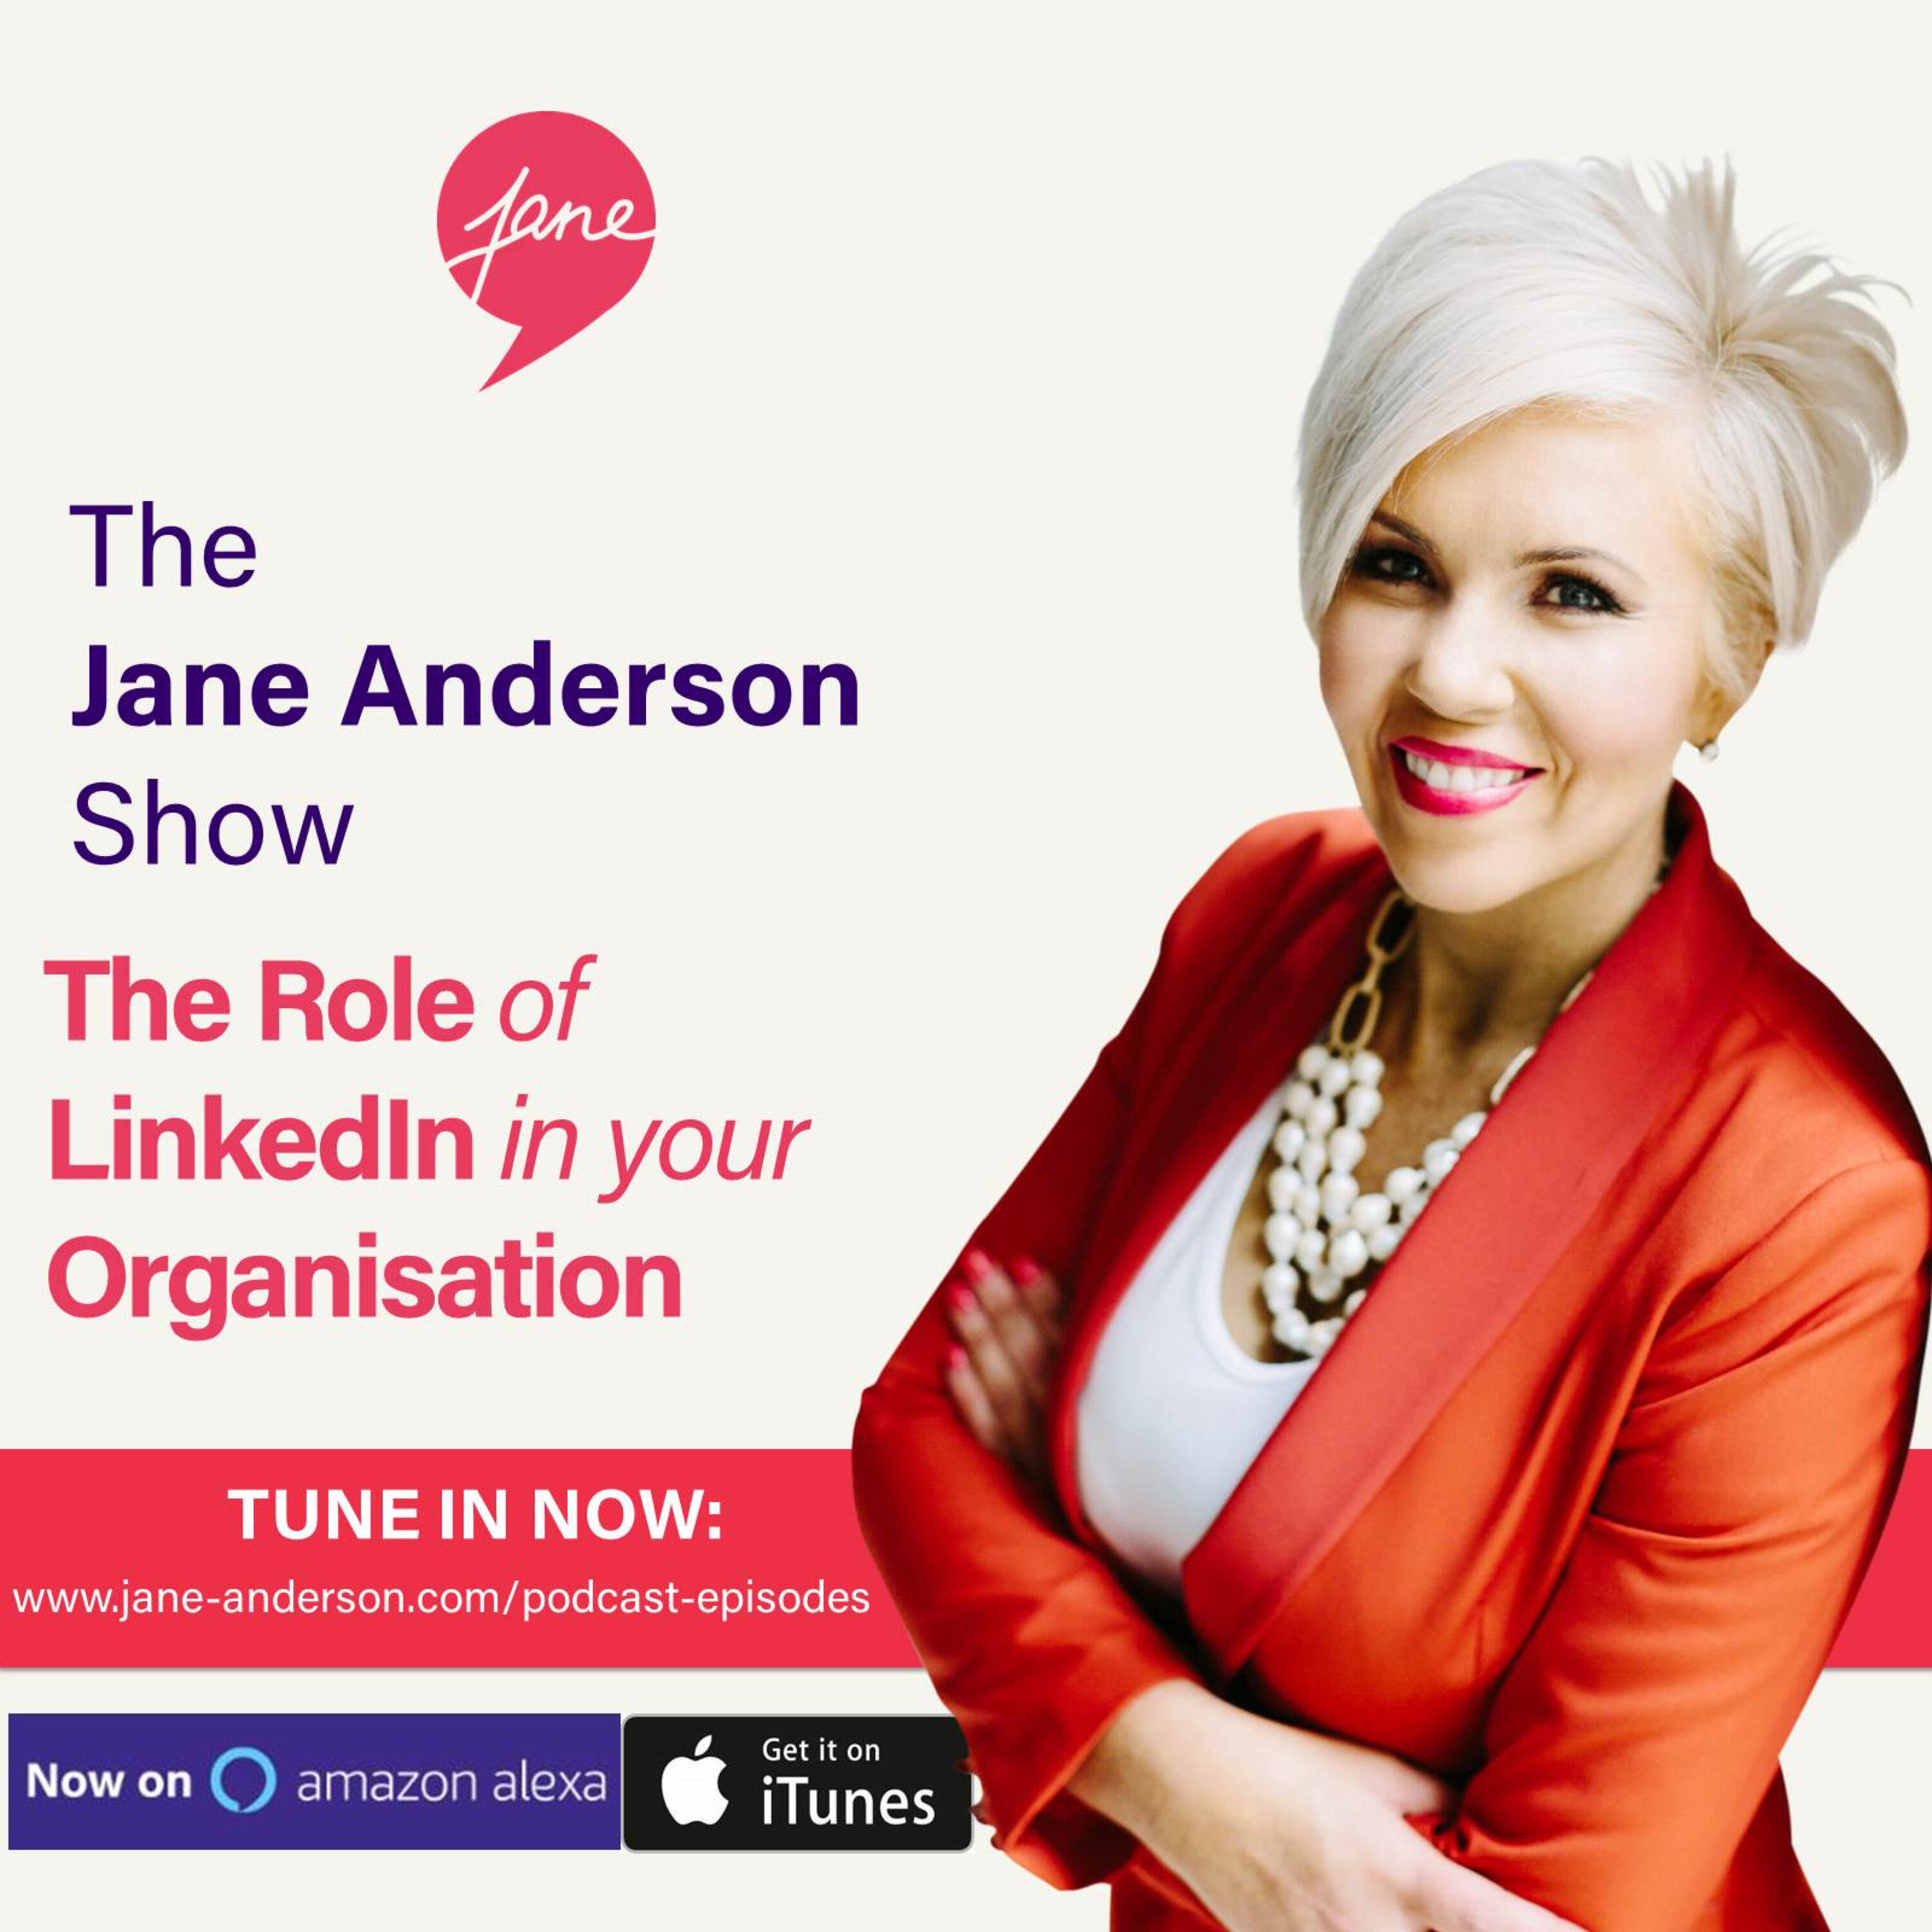 Episode 26 - The Role of LinkedIn for Different Levels in your Organisation